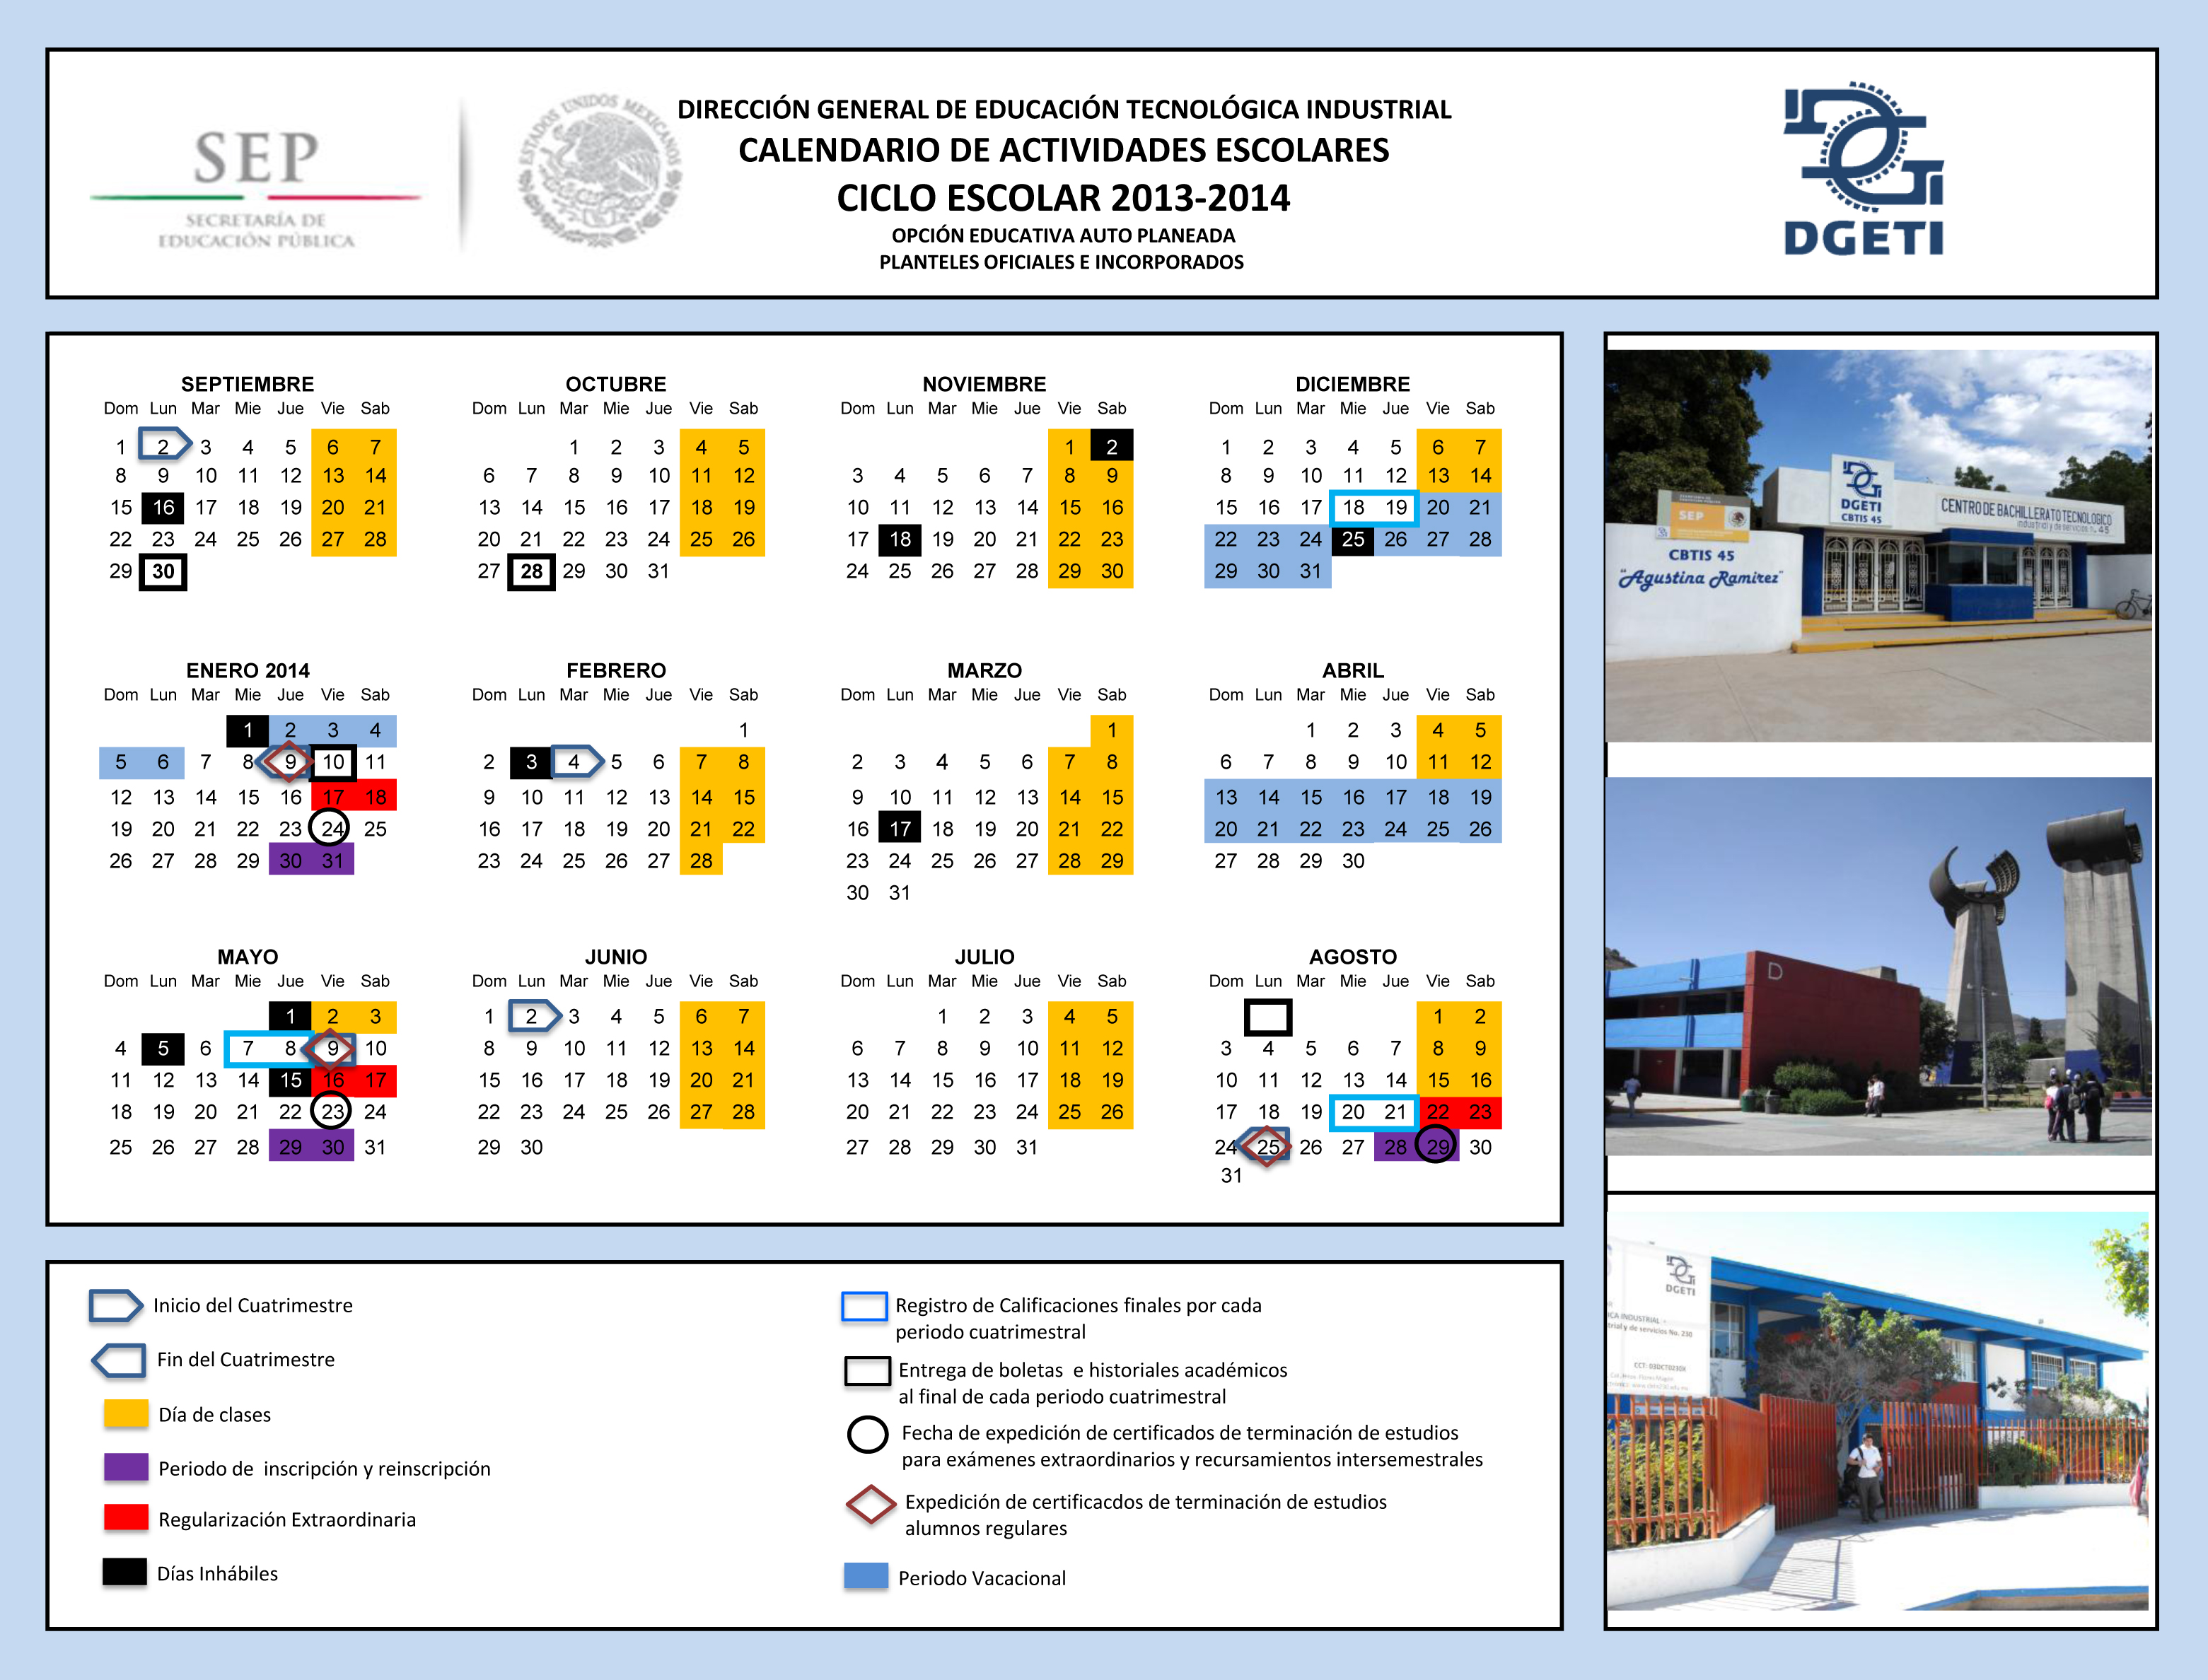 Calendario Escolar Para La Prepa 2016 2017 | Search Results | Calendar ...